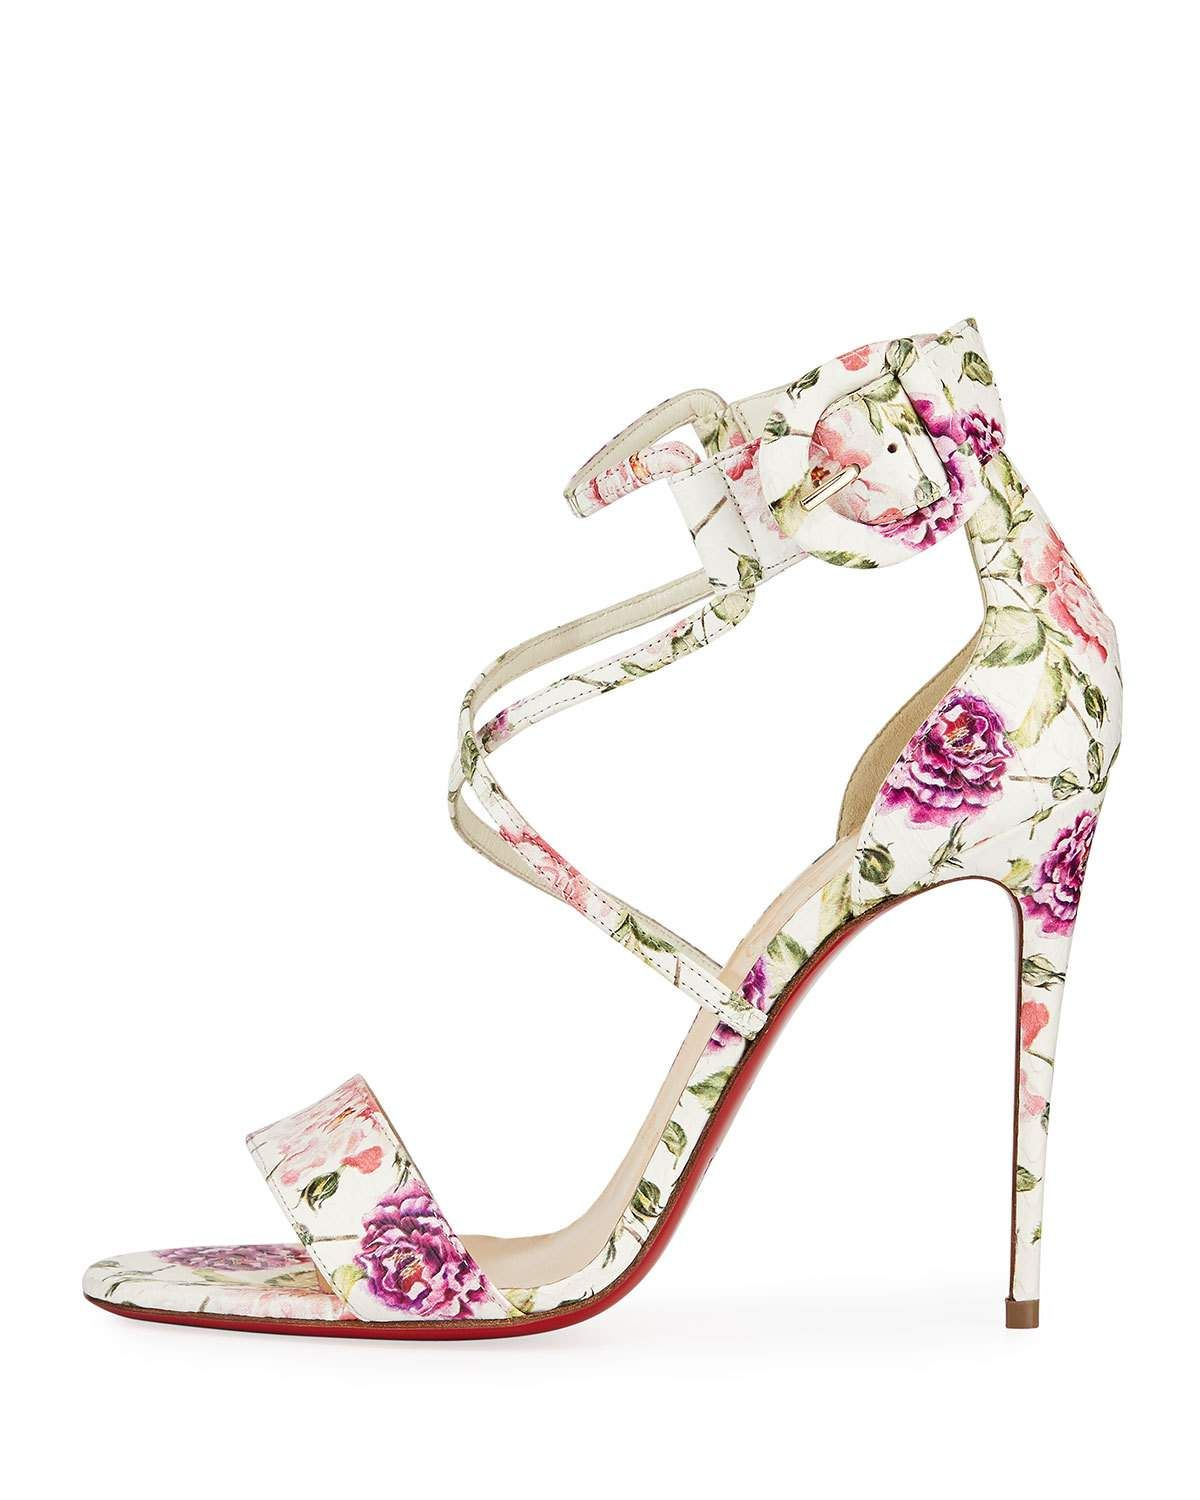 69640c0802e0 Christian Louboutin Choca Floral Snake Red Sole Sandal